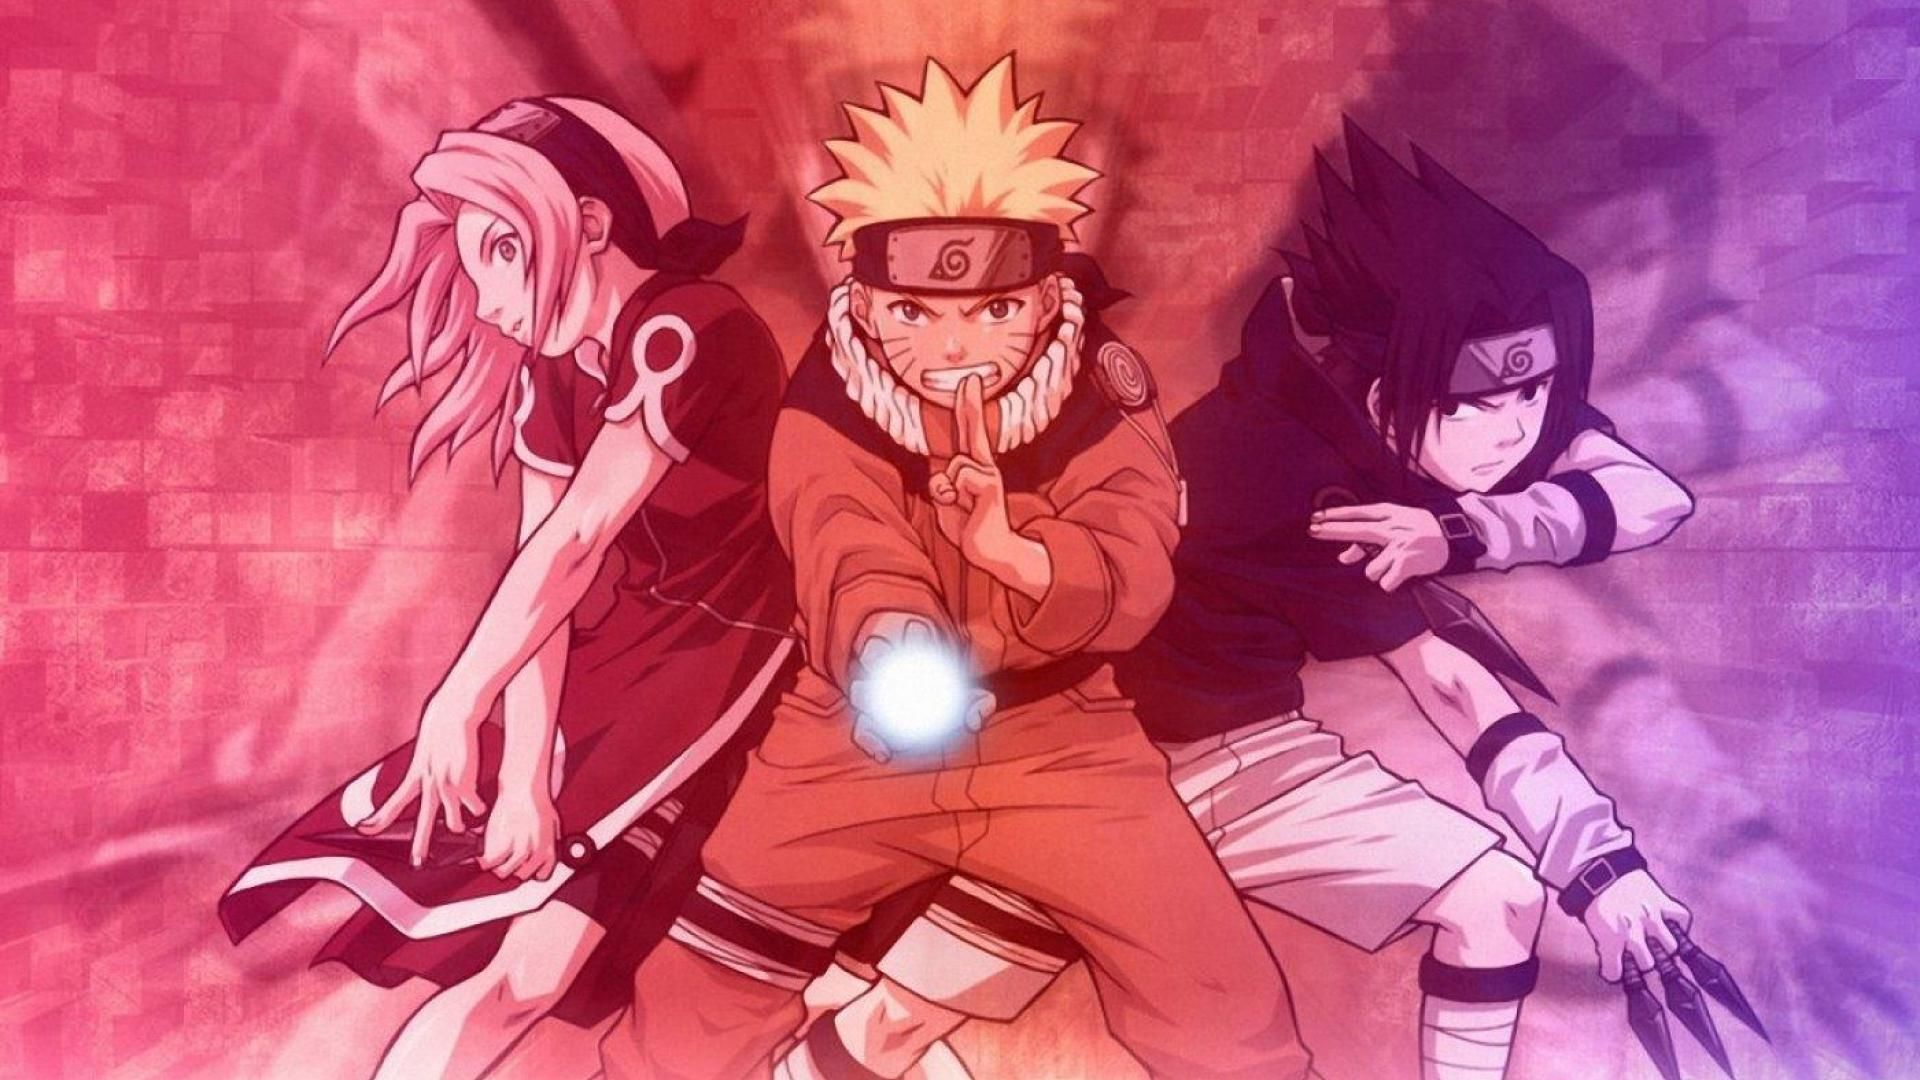 Team 7 Wallpaper 43477 Hd Wallpapers Wallpapersinhq Pw